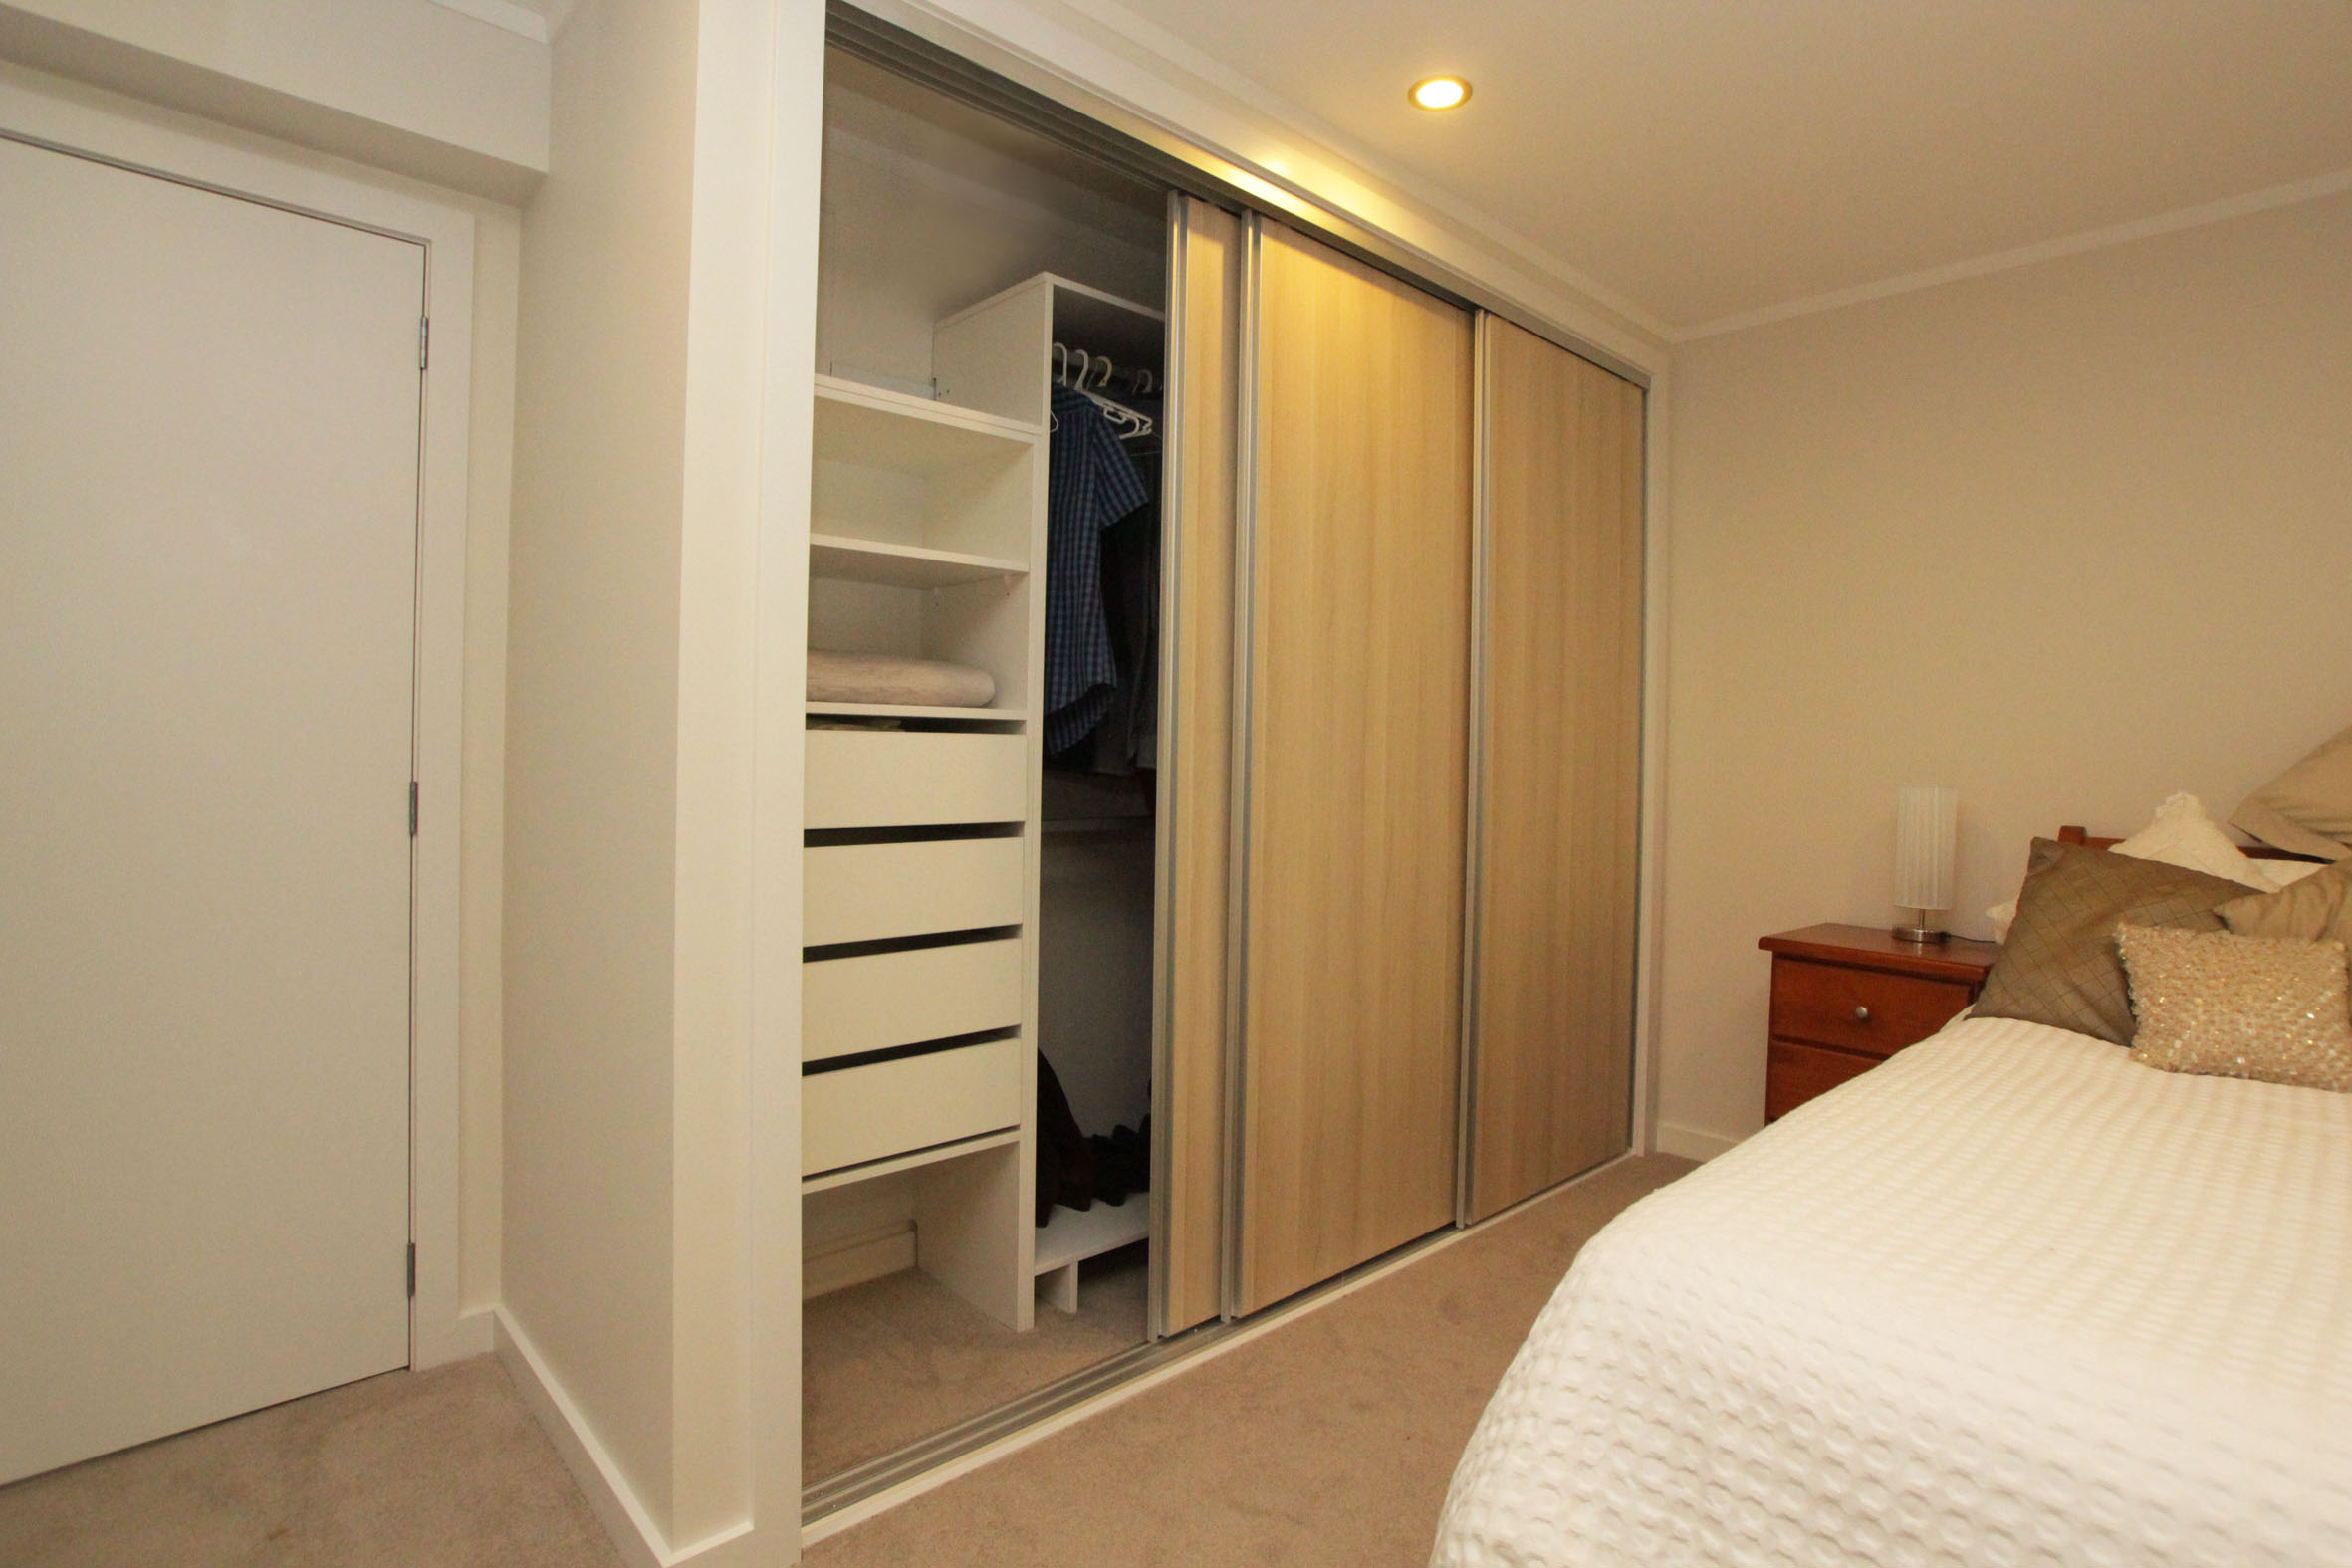 CUSTOM BUILT OAK WARDROBE & STORAGE  Features: Shelves and drawers, sliding doors and hanging space.